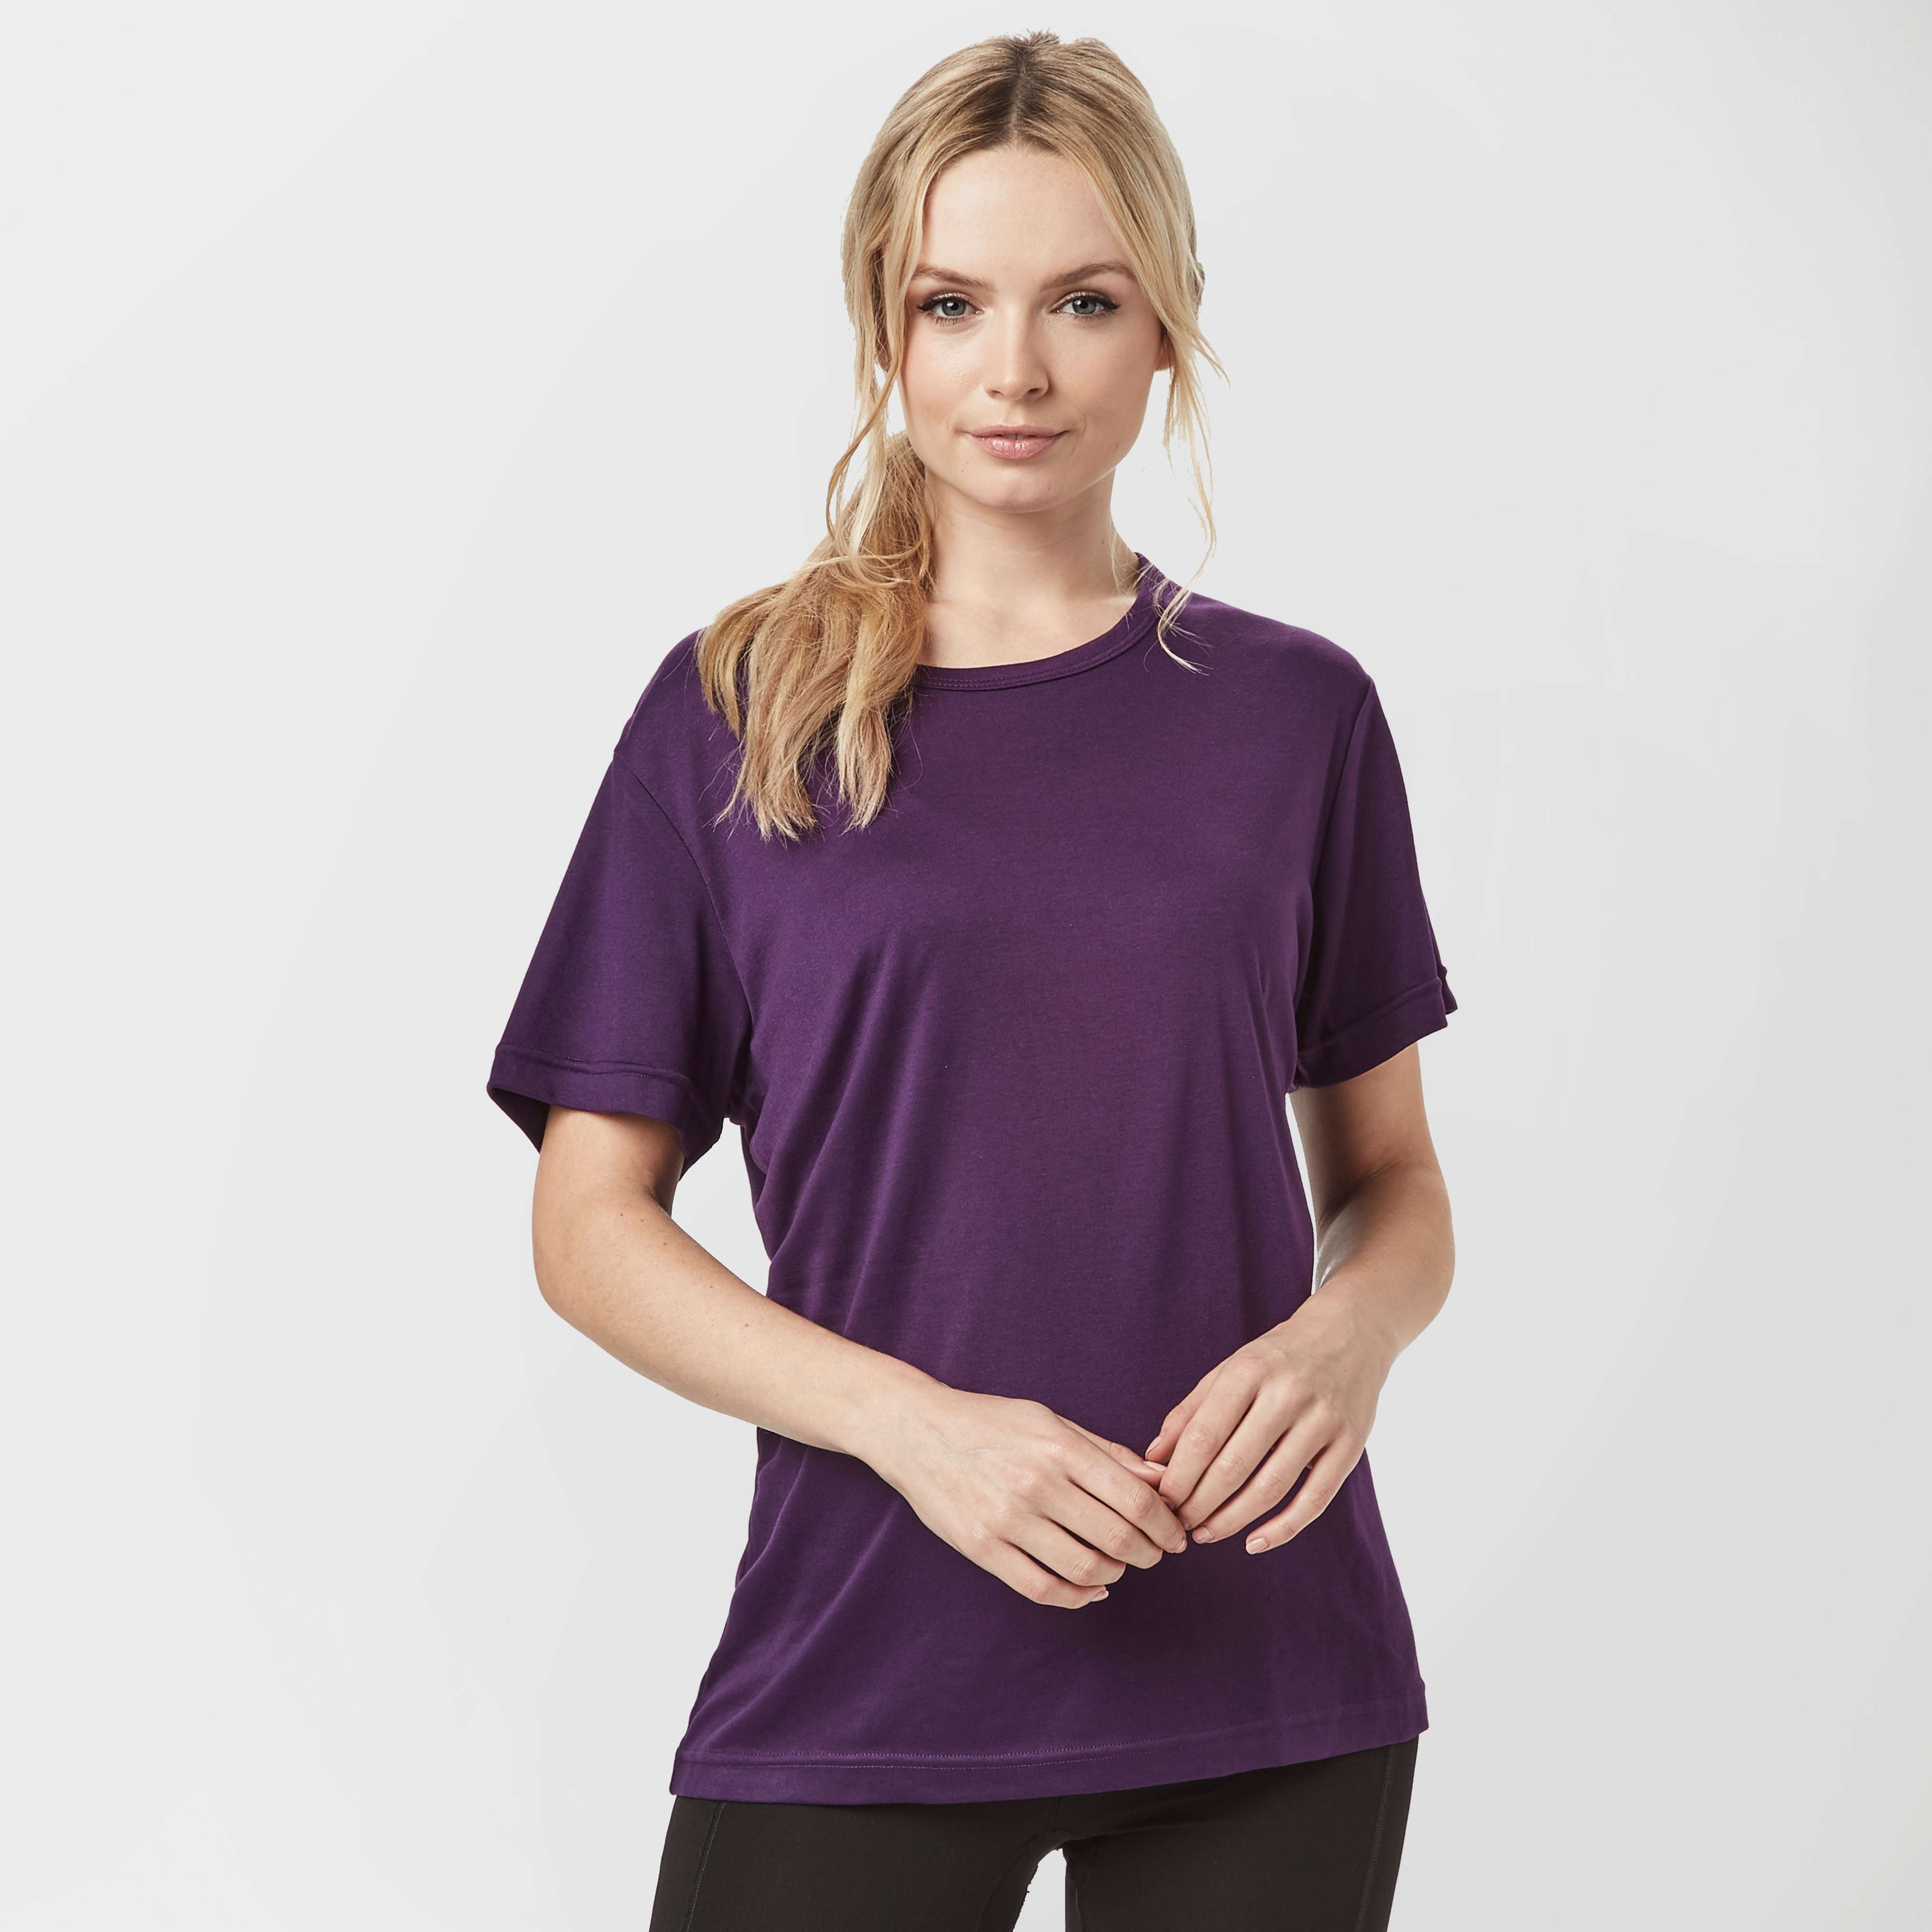 PETER STORM Women's Thermal Crew T-shirt